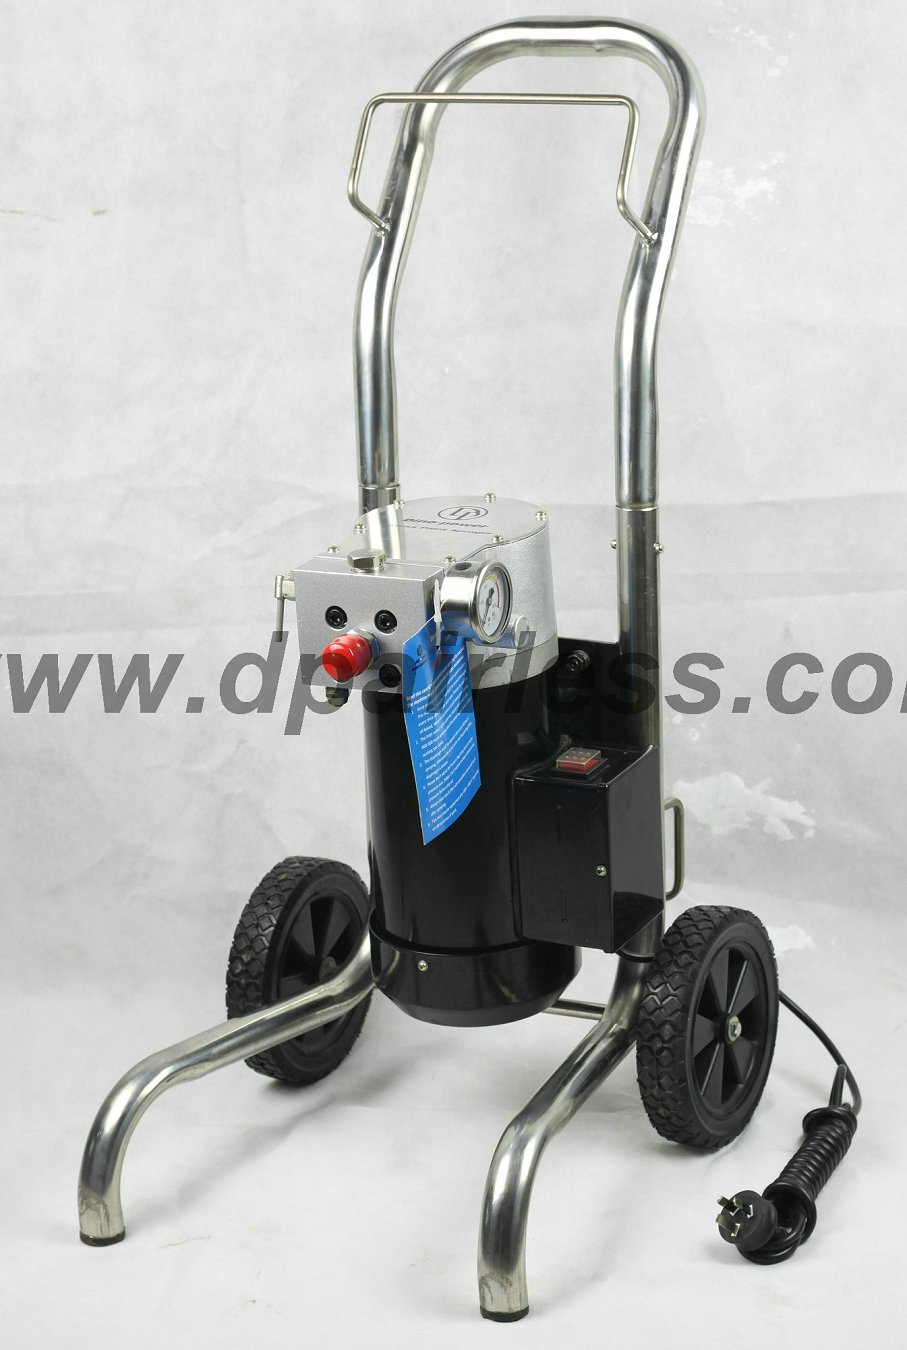 Electric Diaphragm Pump Airless Painting Sprayers Dp